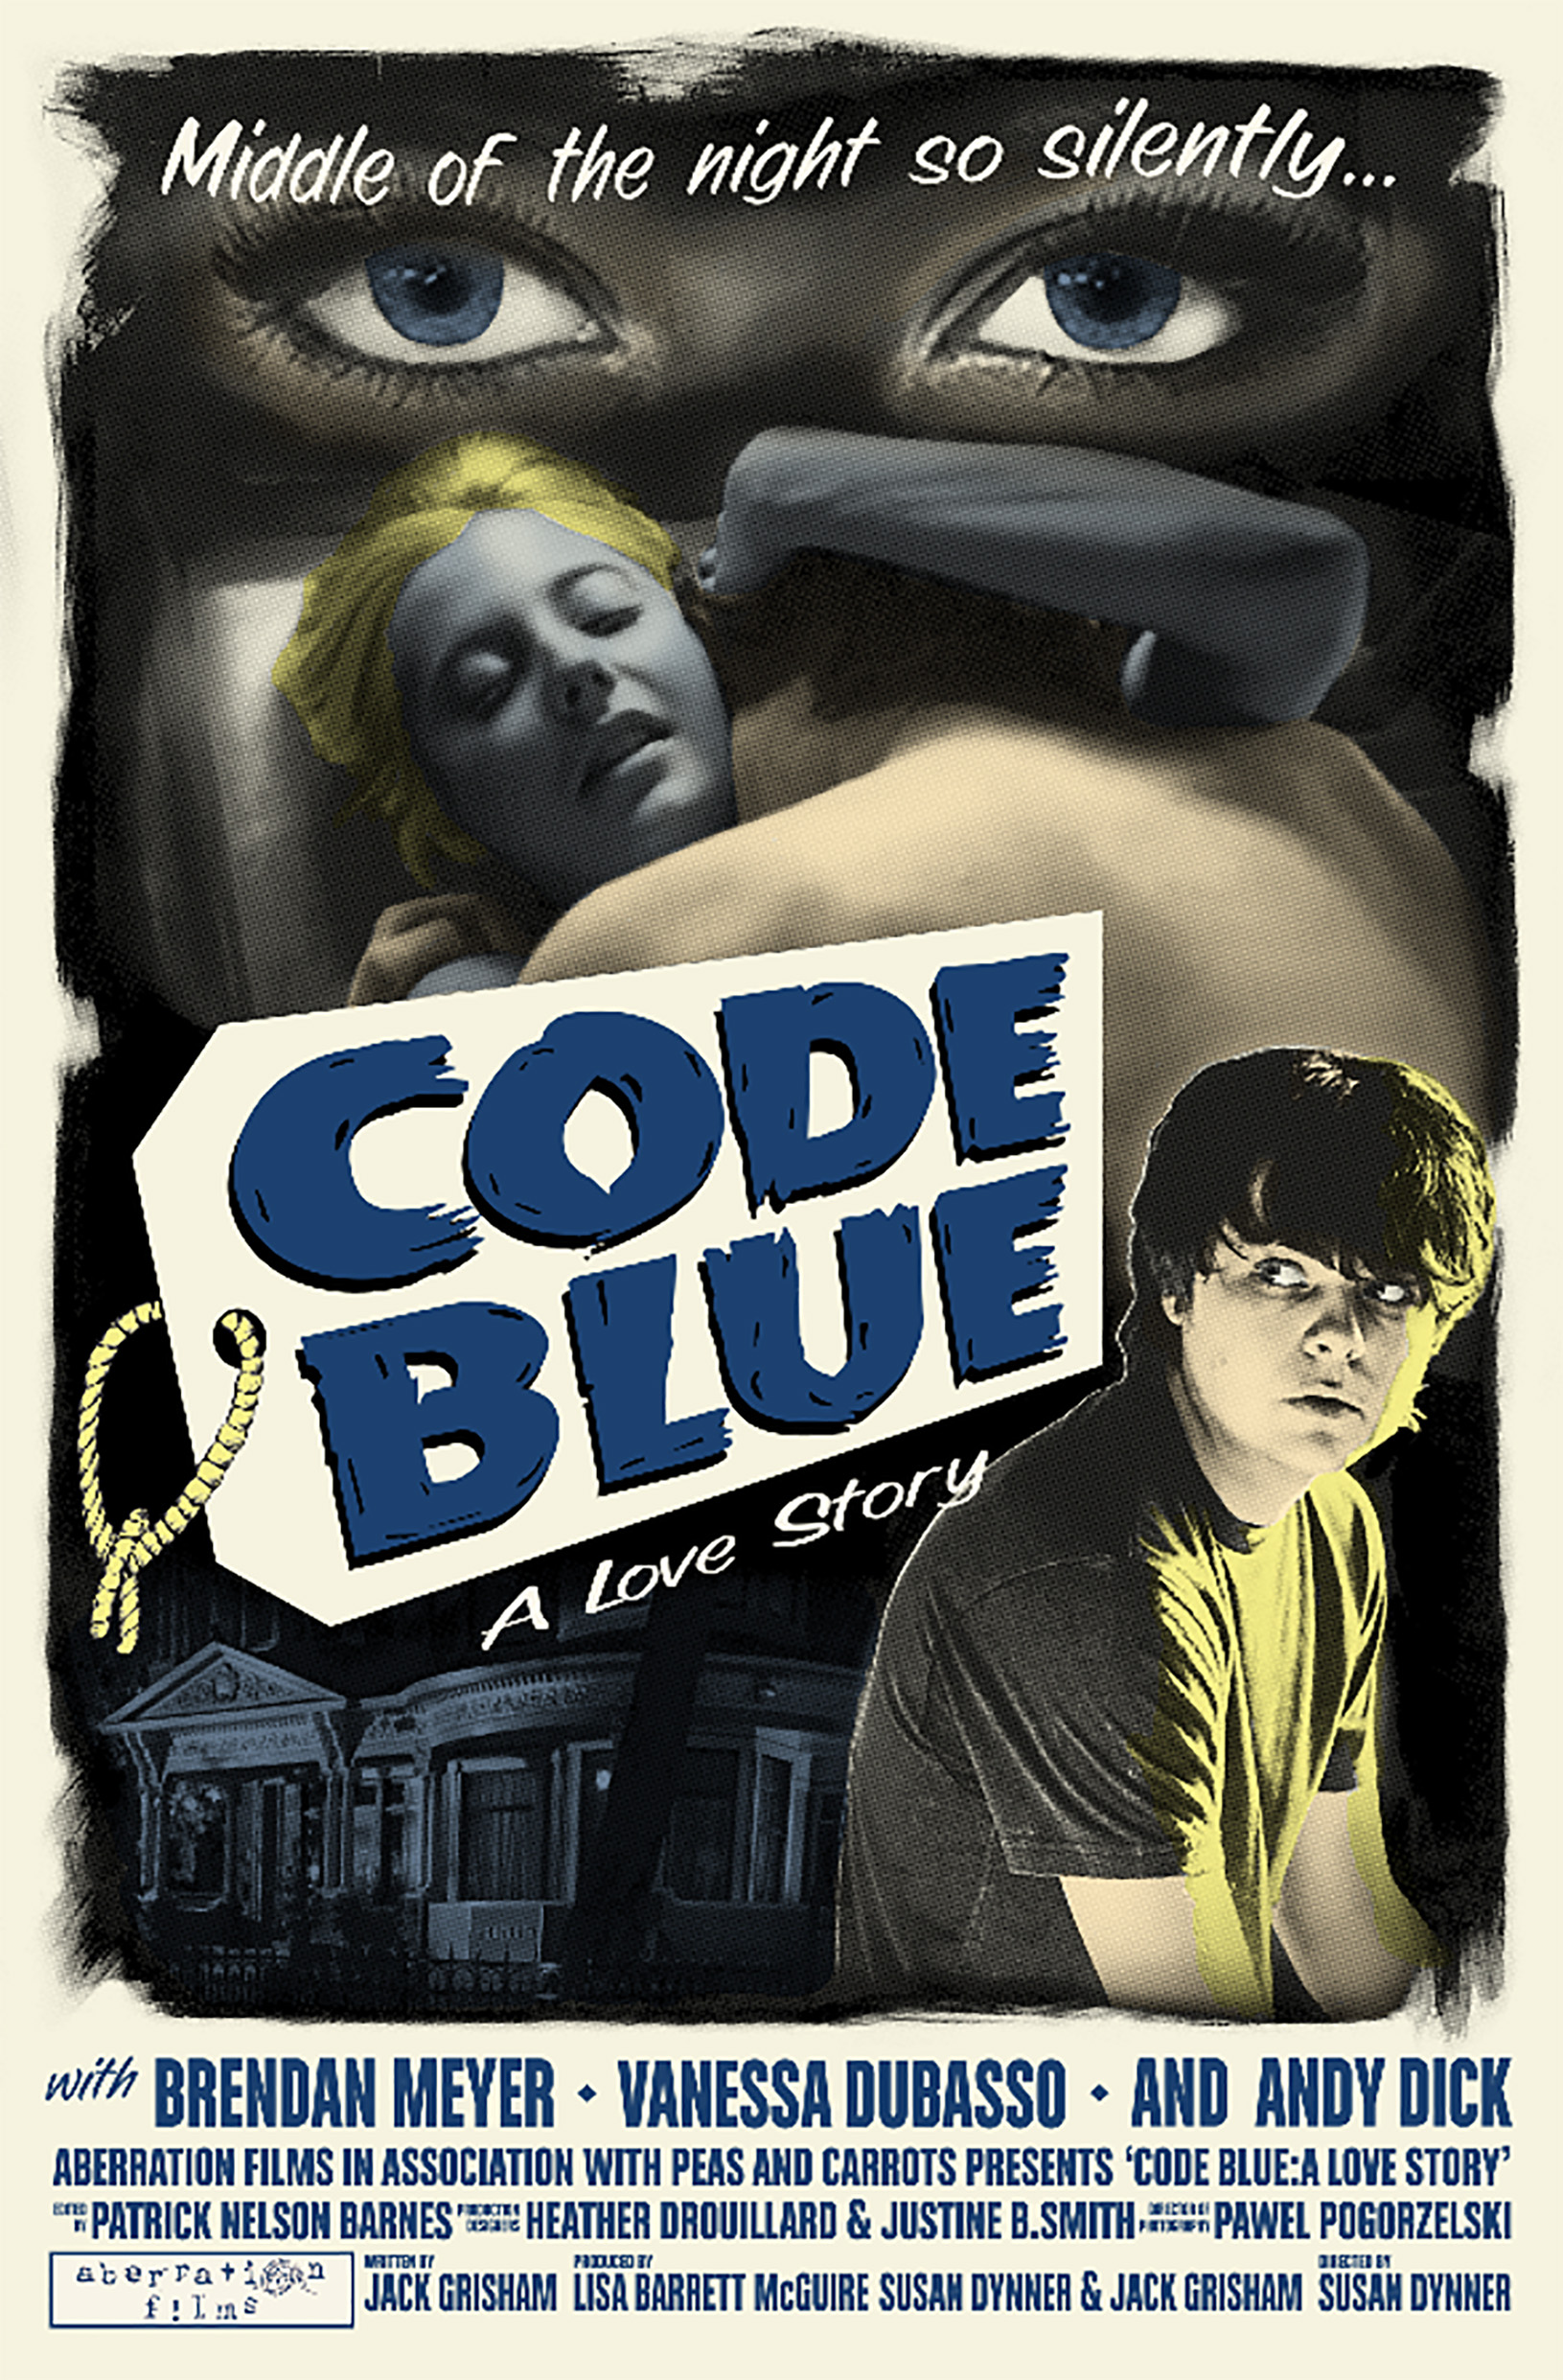 Brendan Meyer and Vanessa Dubasso in Code Blue: A Love Story (2016)